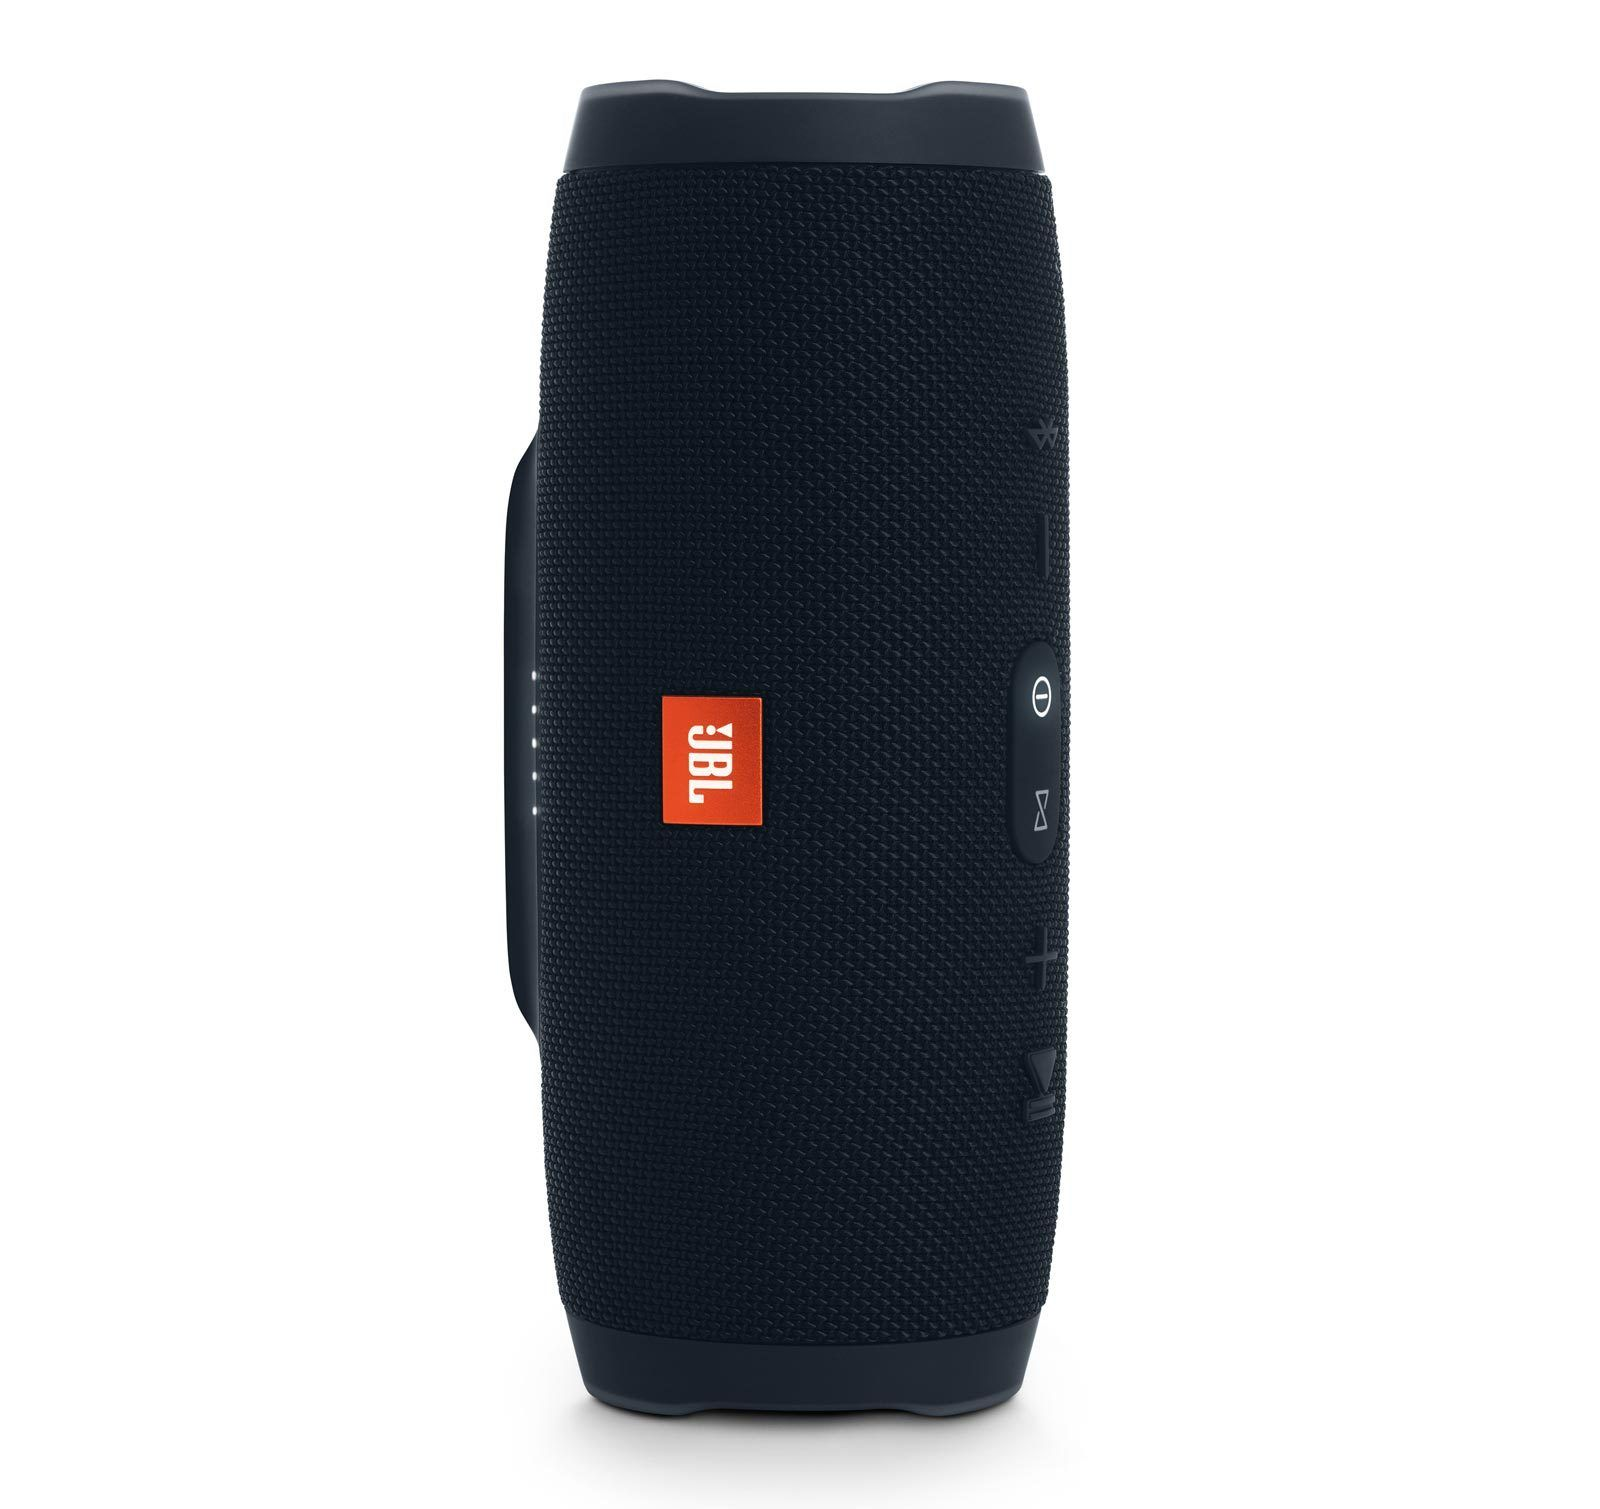 New JBL Charge 3 portable Waterproof Bluetooth speaker (BLACK)